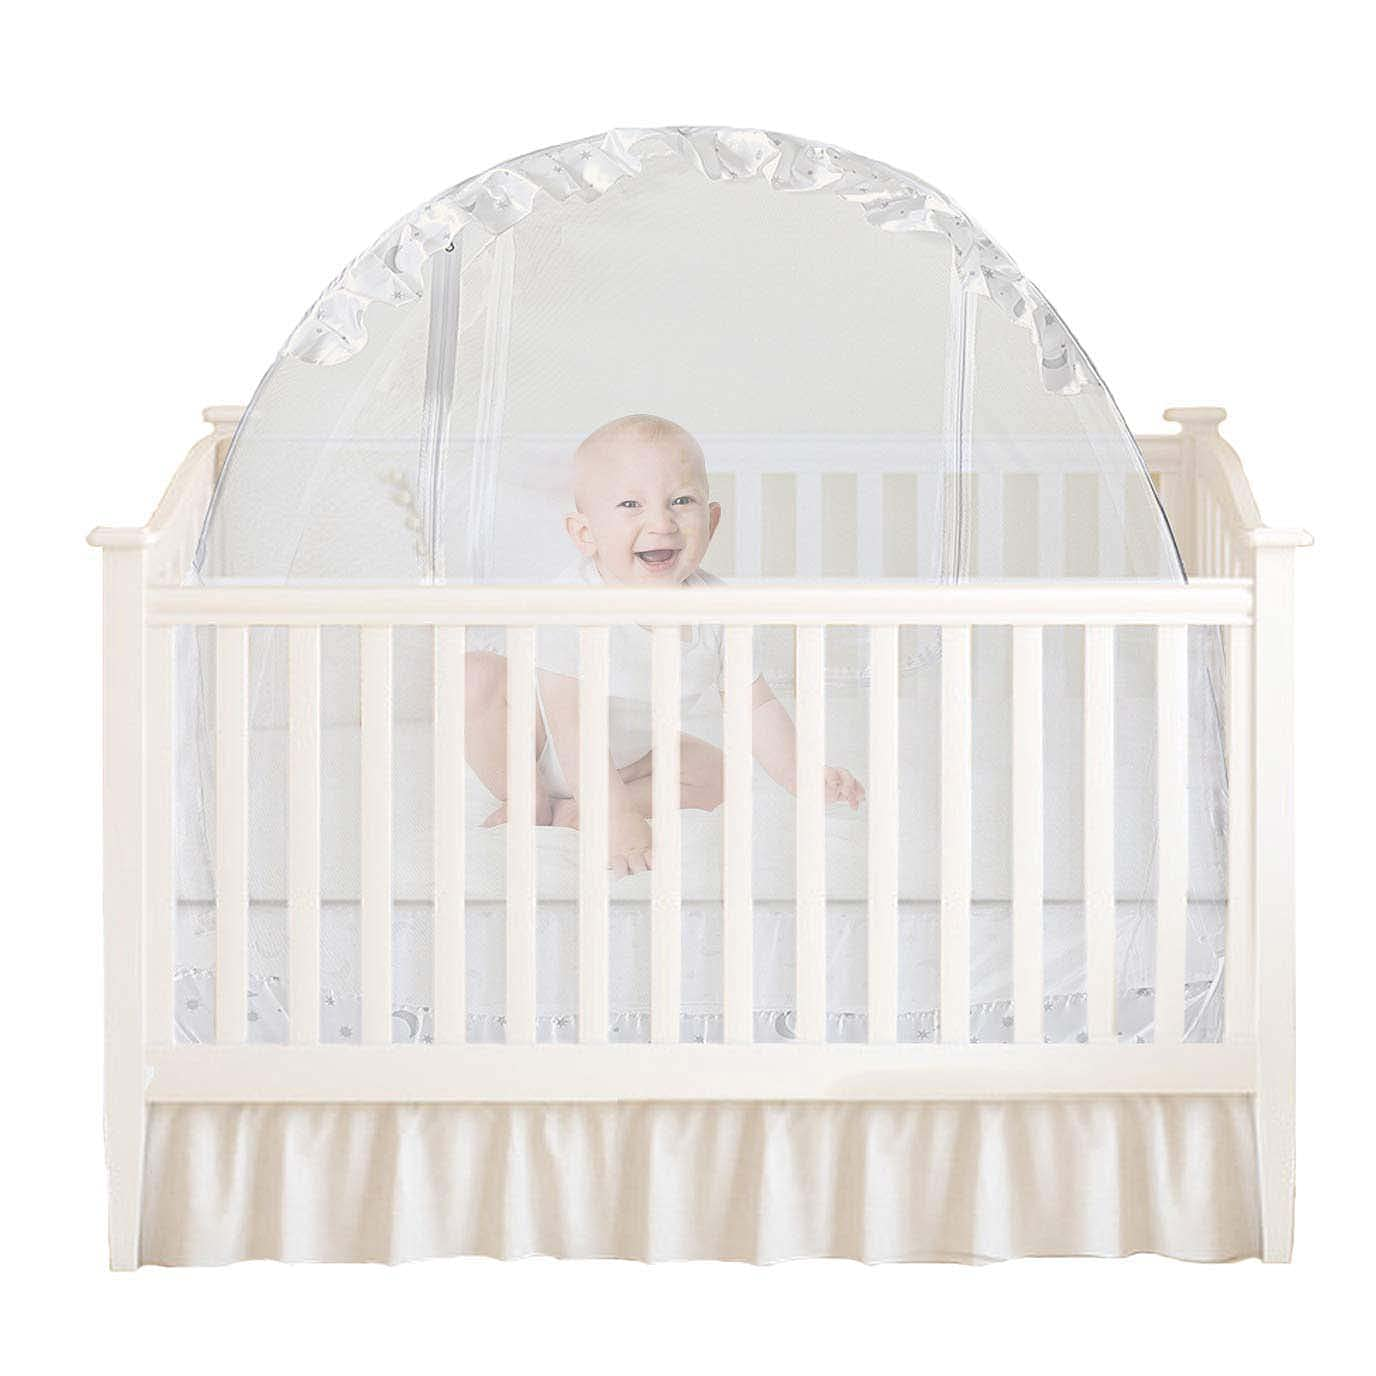 Houseables Baby Tent, Mosquito Net for Bed, White, 48